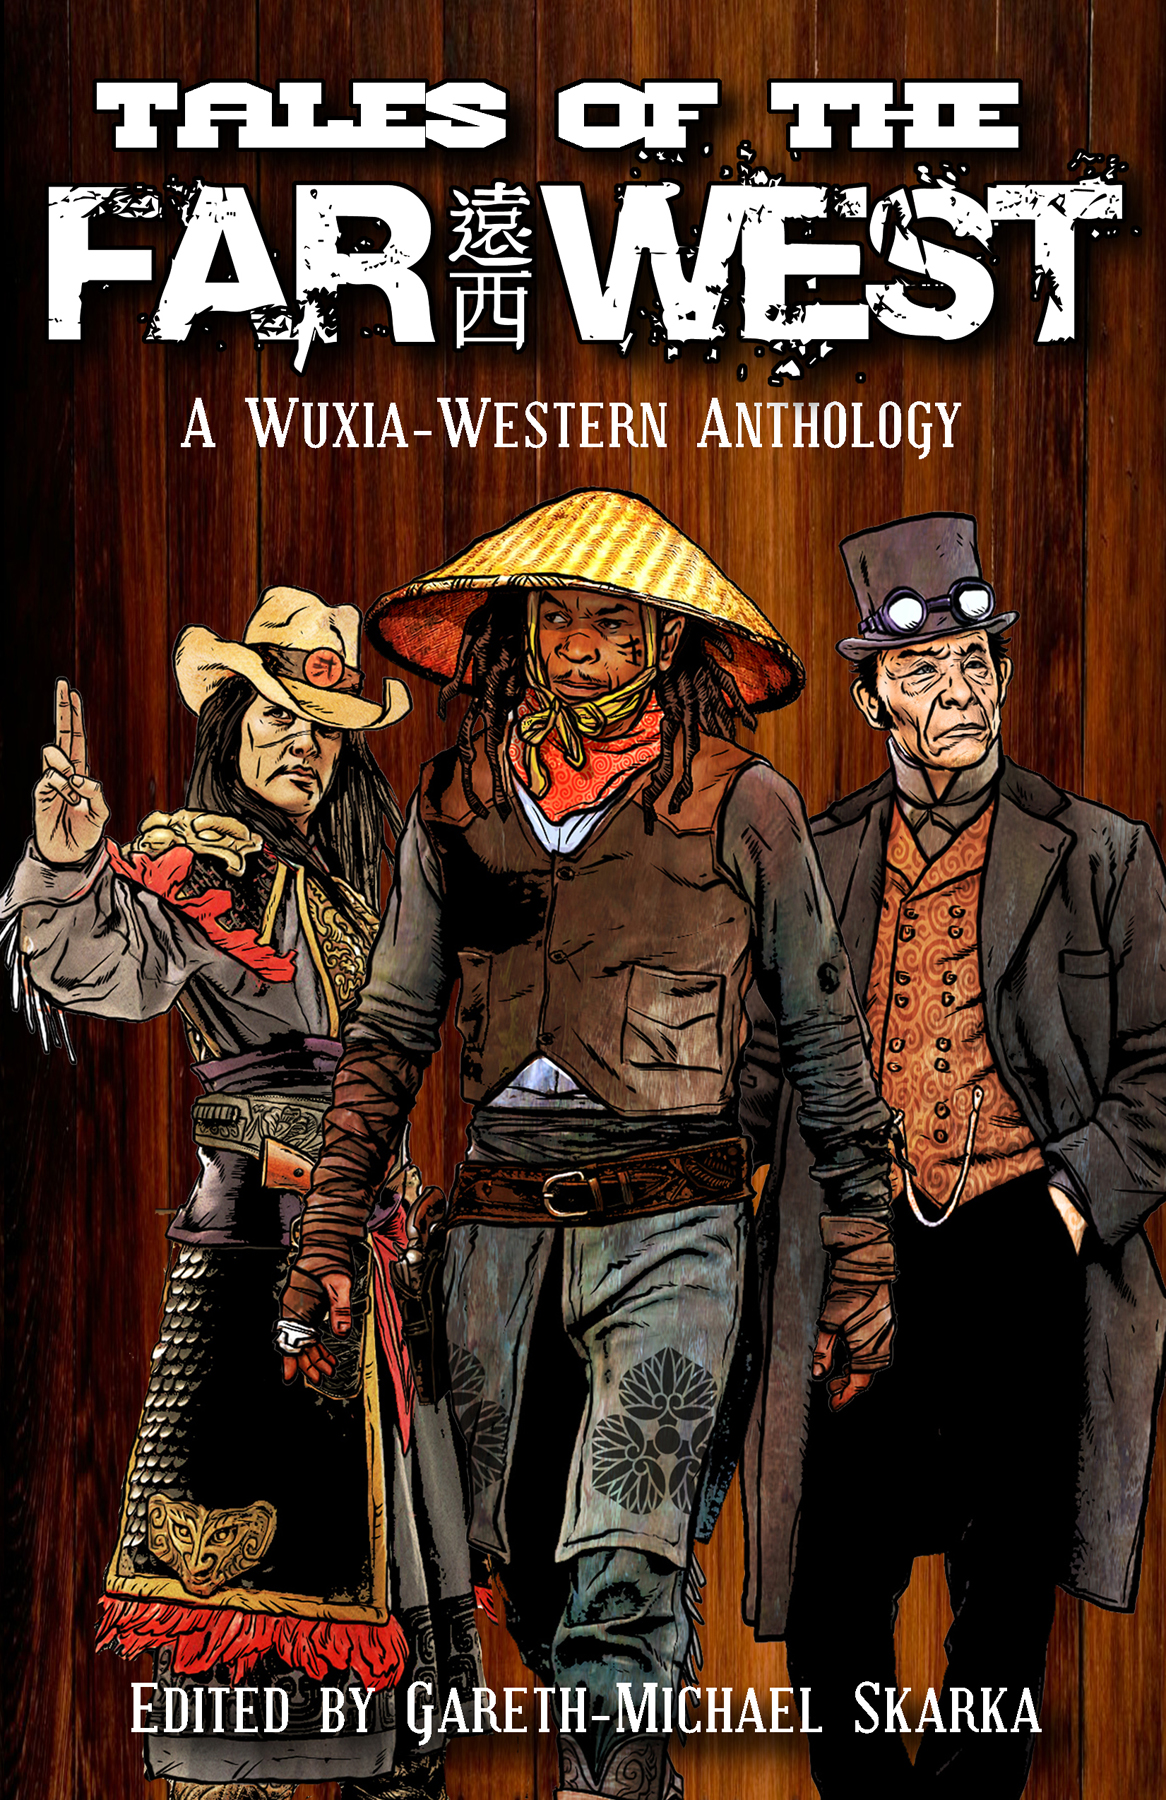 Sixguns, Steampunk and Wuxia: Tales of the Far West - The Functional